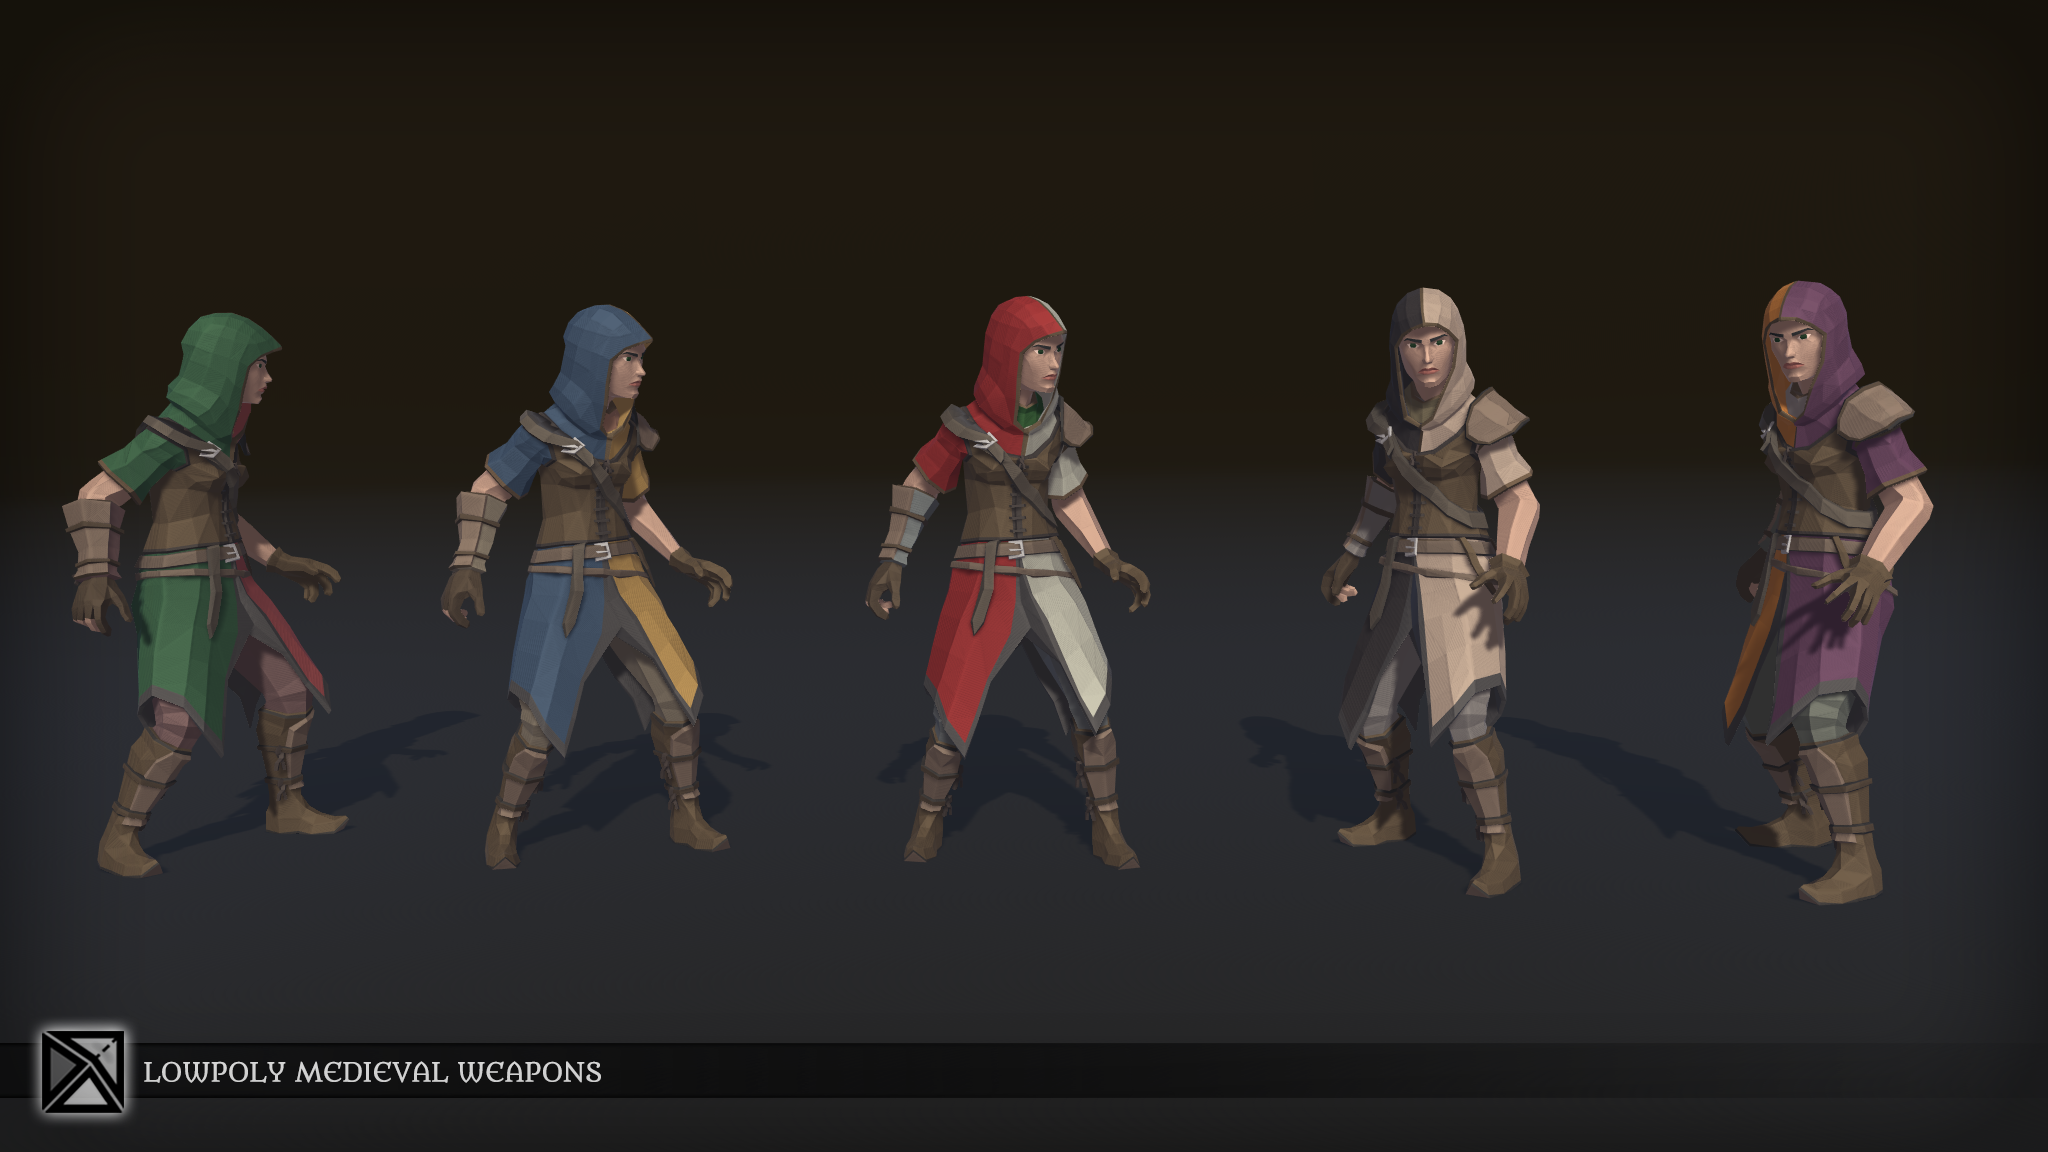 PT_Medieval_Lowpoly_Weapons_female_archer.png